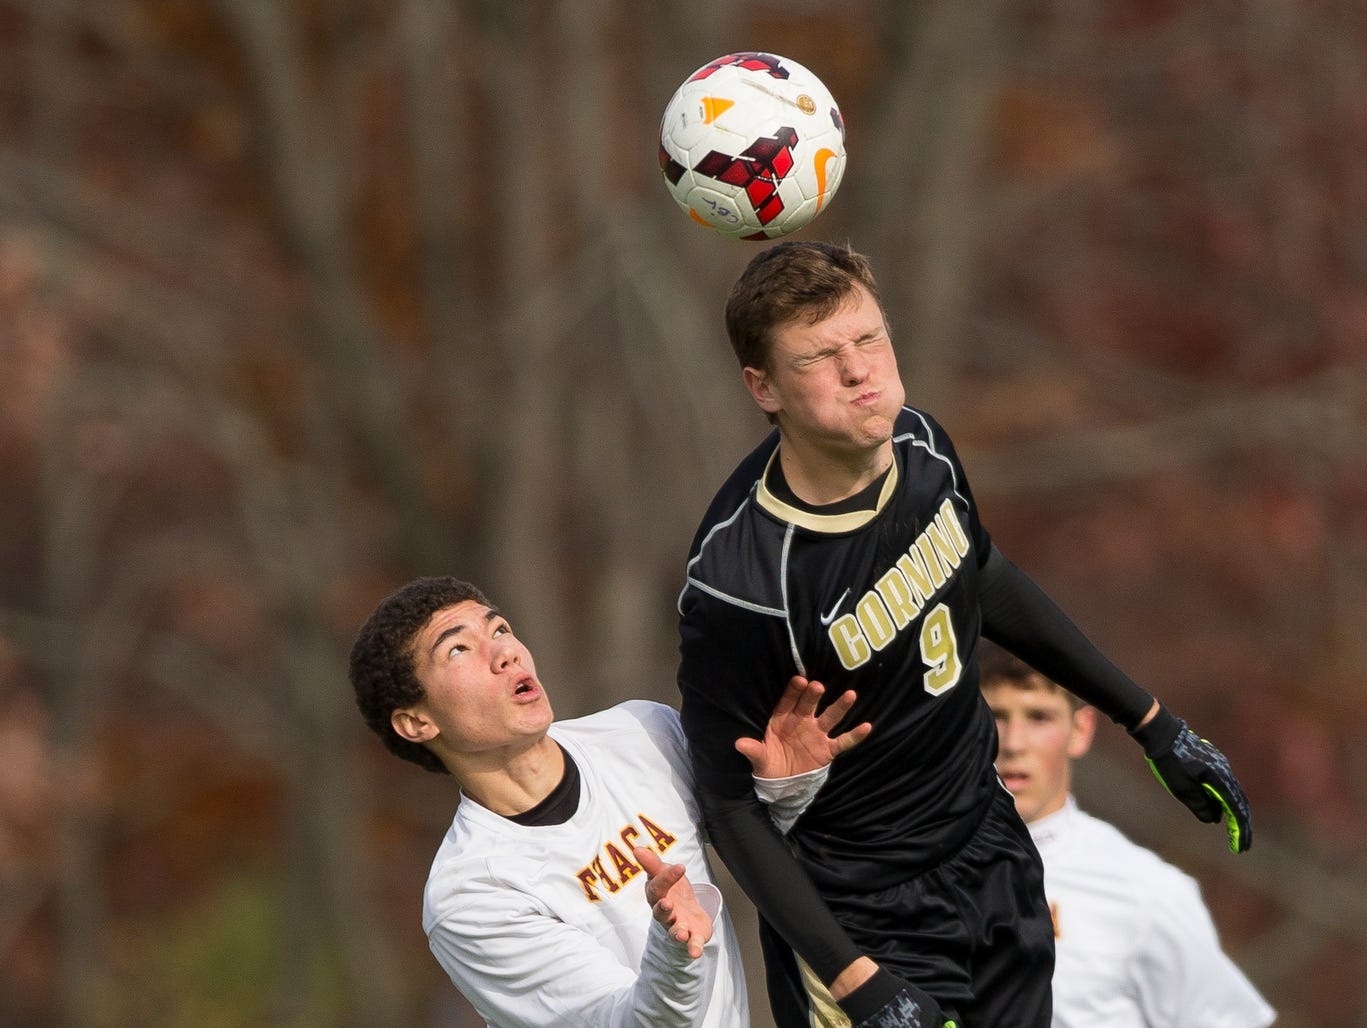 Ithaca's Mason Wolff, left, watches as Corning's Isaac Cornfield plays the ball Saturday during Ithaca's 2-0 win in the Section IV Class AA game in Oneonta.